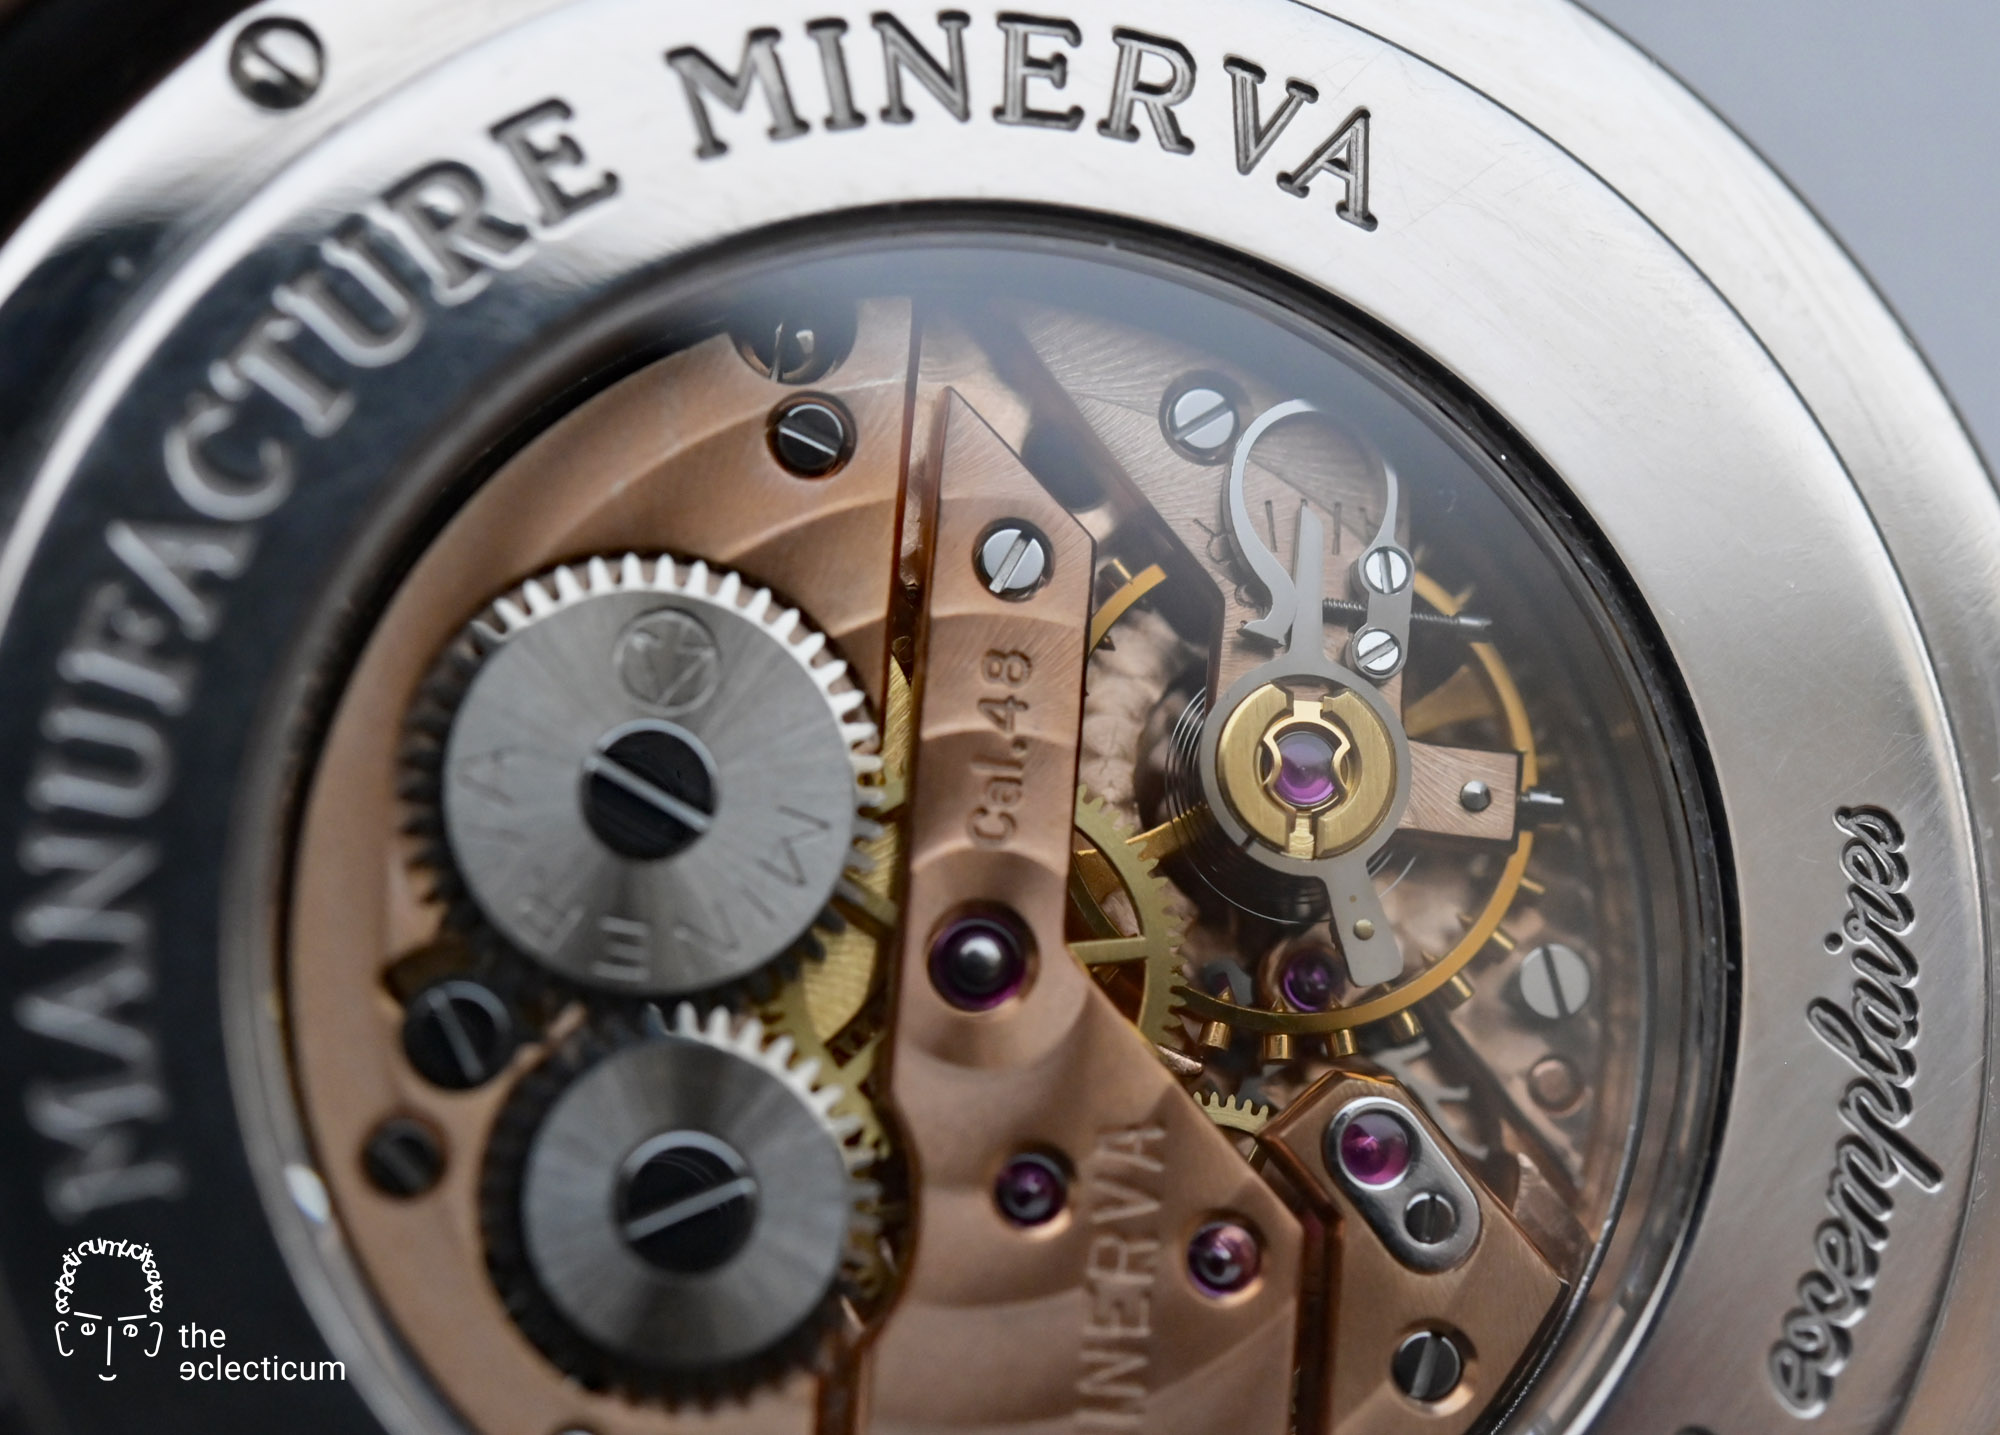 Minerva Pythagore 40mm white gold Cal. 48 manufacture